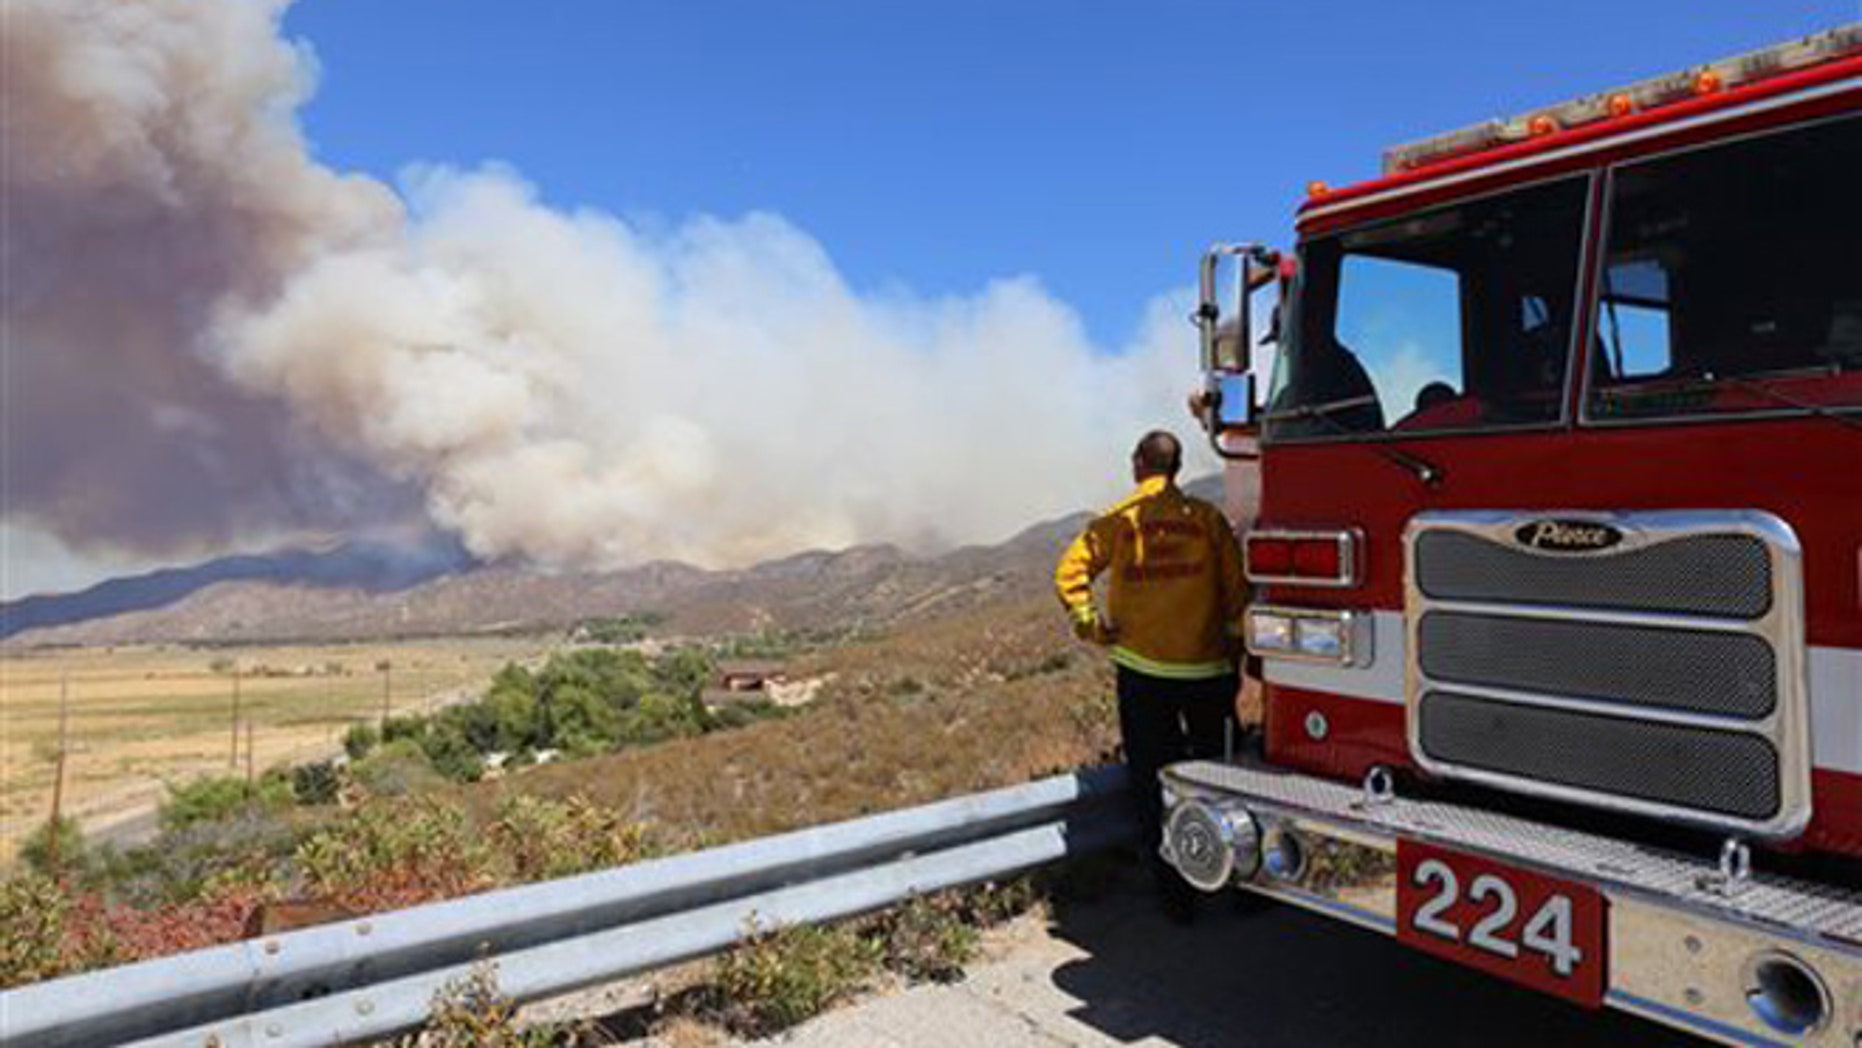 A San Bernardino County Fire Department engine and its crew keep watch over Summit Valley, Calif., as a wildfire burns east of Silverwood Lake on Sunday, Aug. 7, 2016.